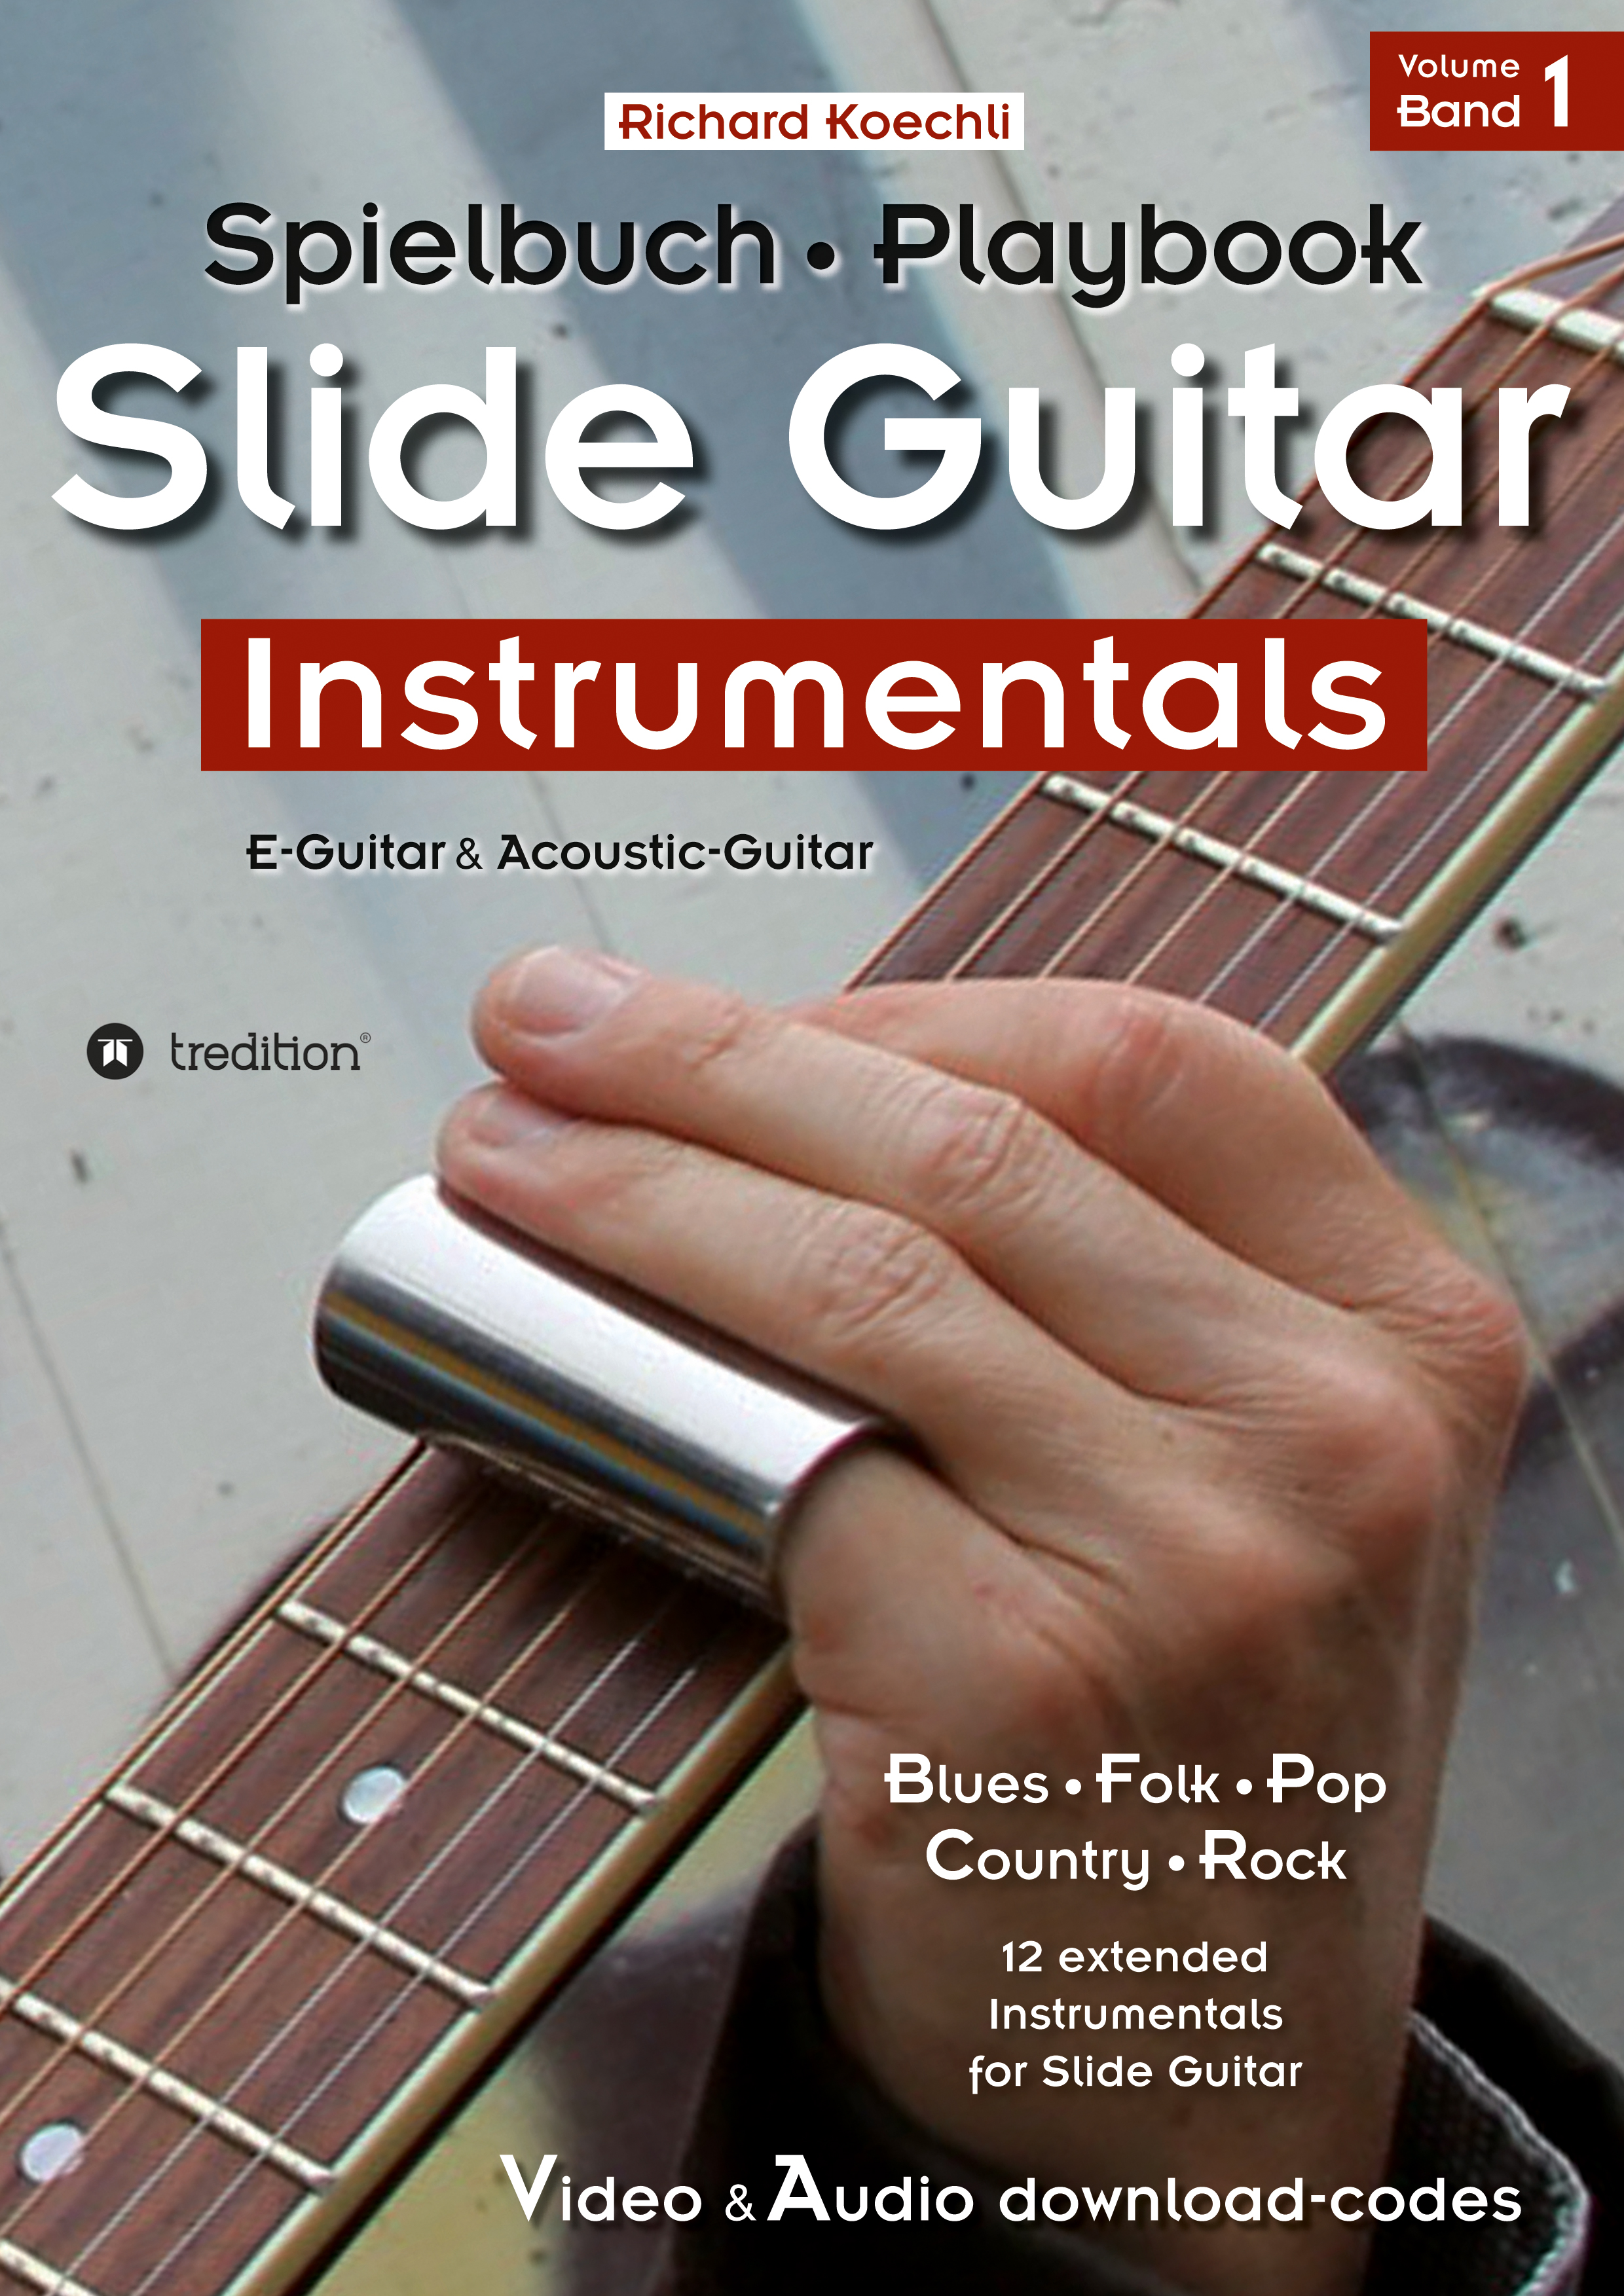 Slide Guitar Instrumentals - das Spielbuch, the Playbook